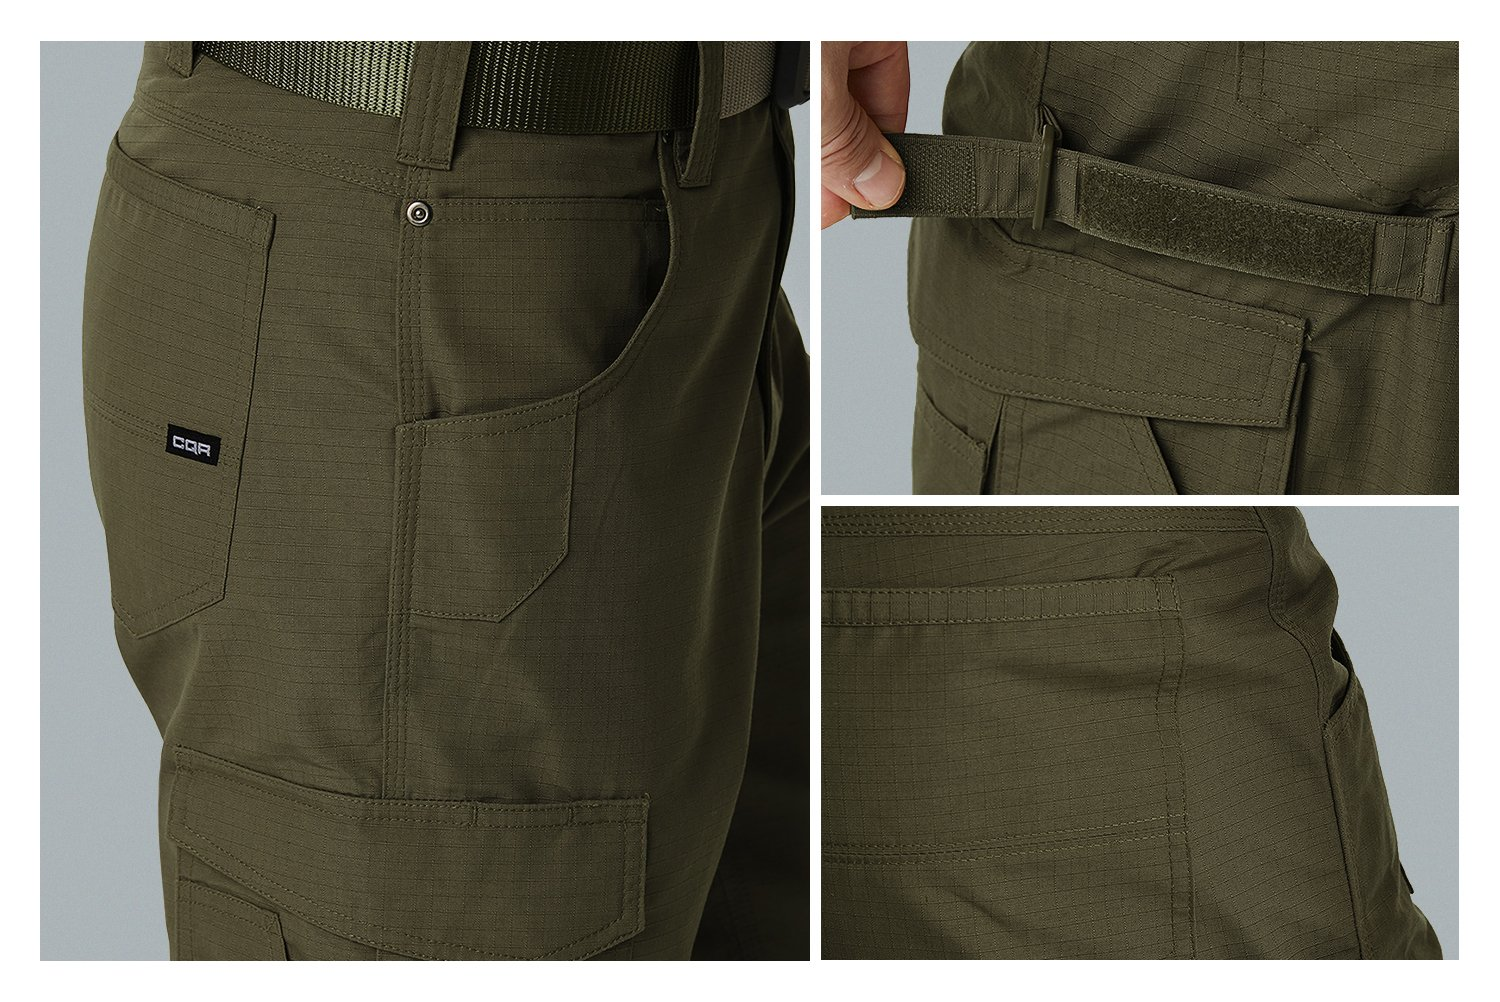 CQR CQ-TWP302-BLK_38W/34L Men's Operator Rip-Stop Tactical Work Utility Pants EDC TWP302 by CQR (Image #9)